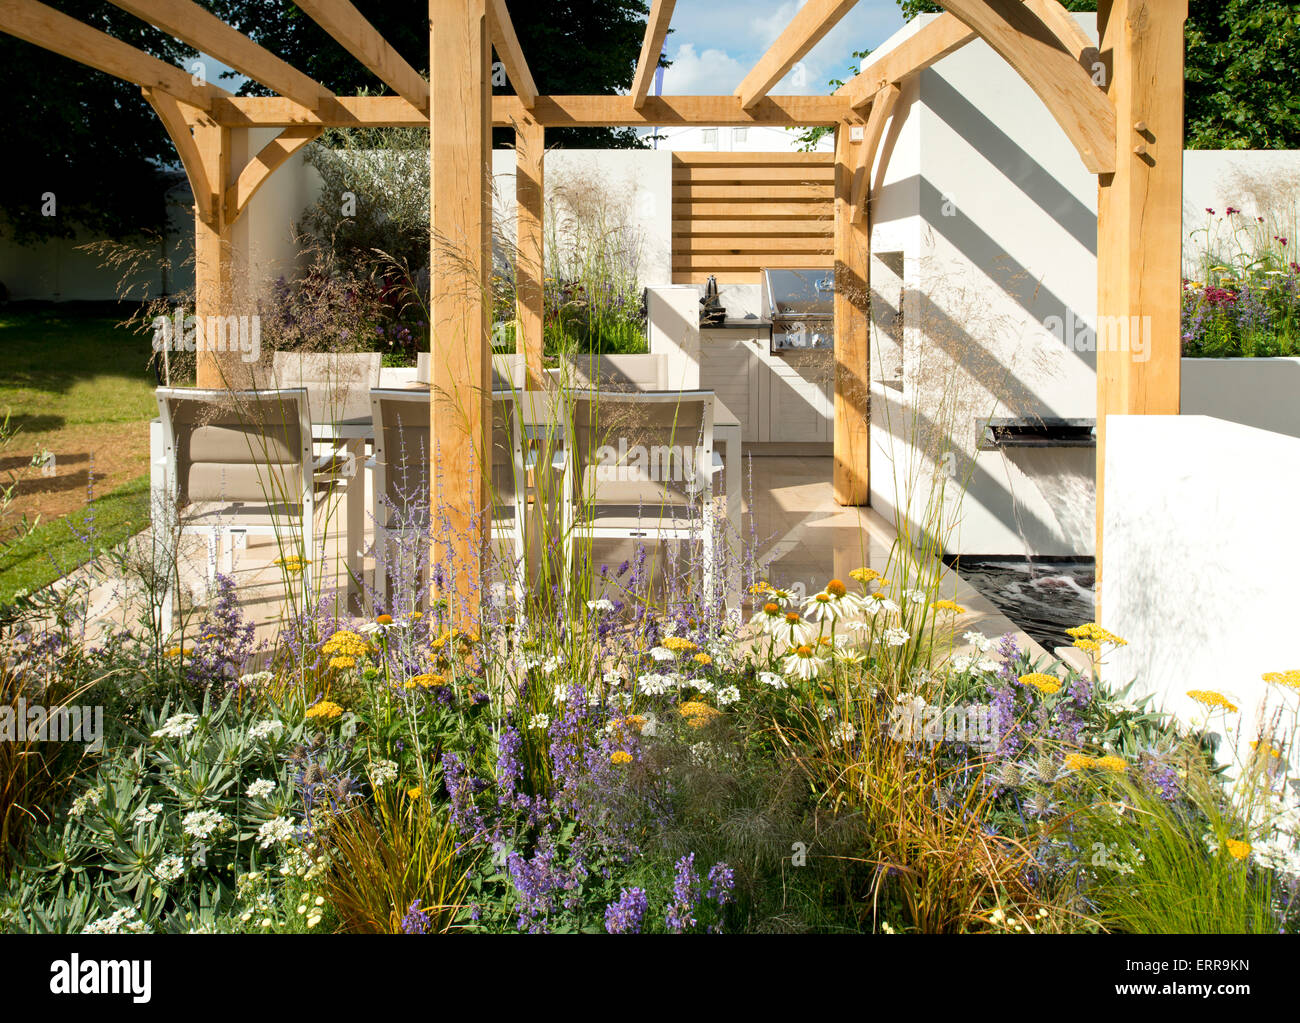 Bobby Flay Outdoor Kitchen Show Cooking Stock Photos Show Cooking Stock Images Alamy